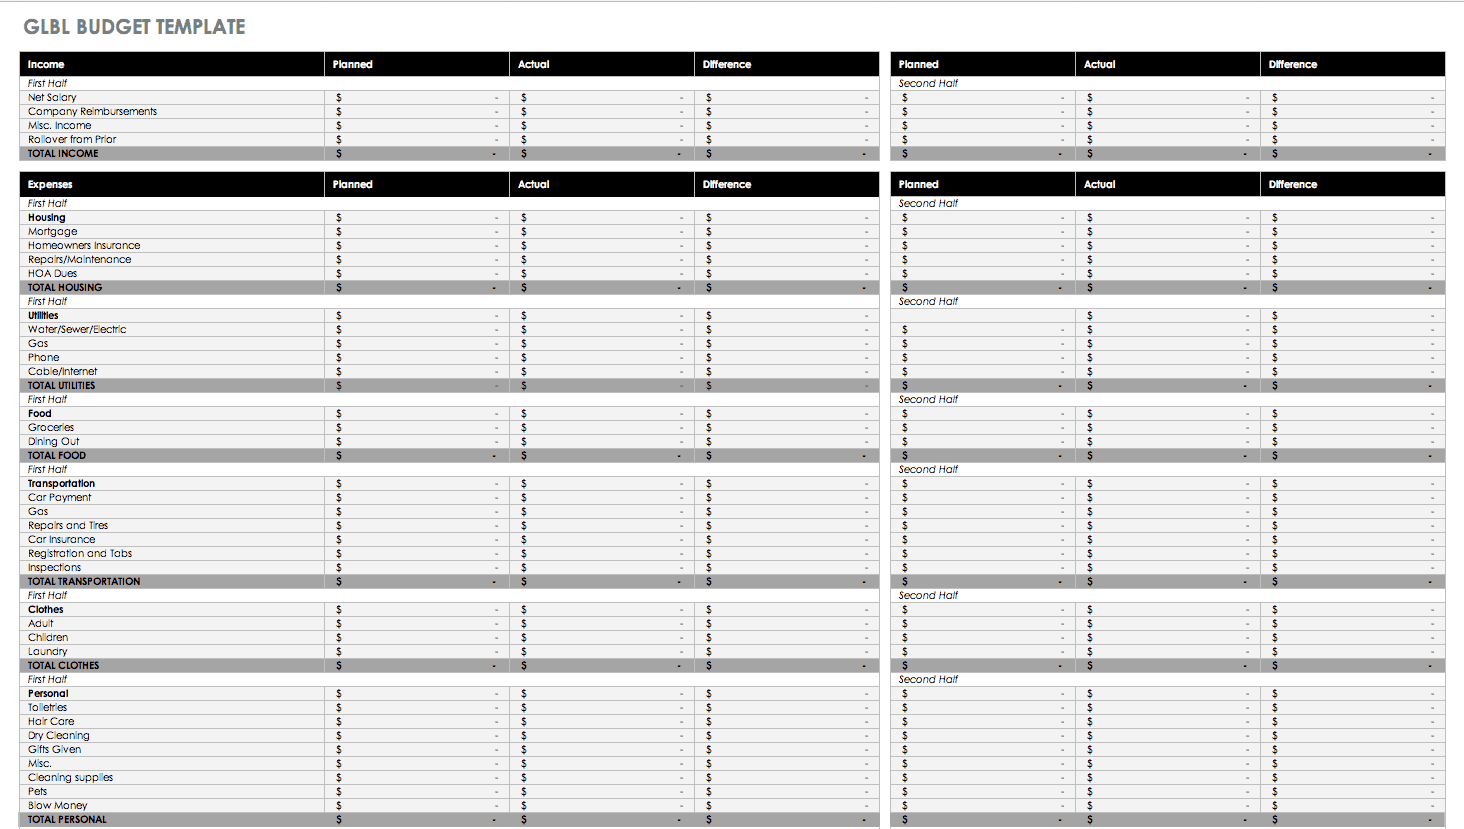 photograph regarding Budget Planner Printable named Free of charge Spending plan Templates inside of Excel Smartsheet